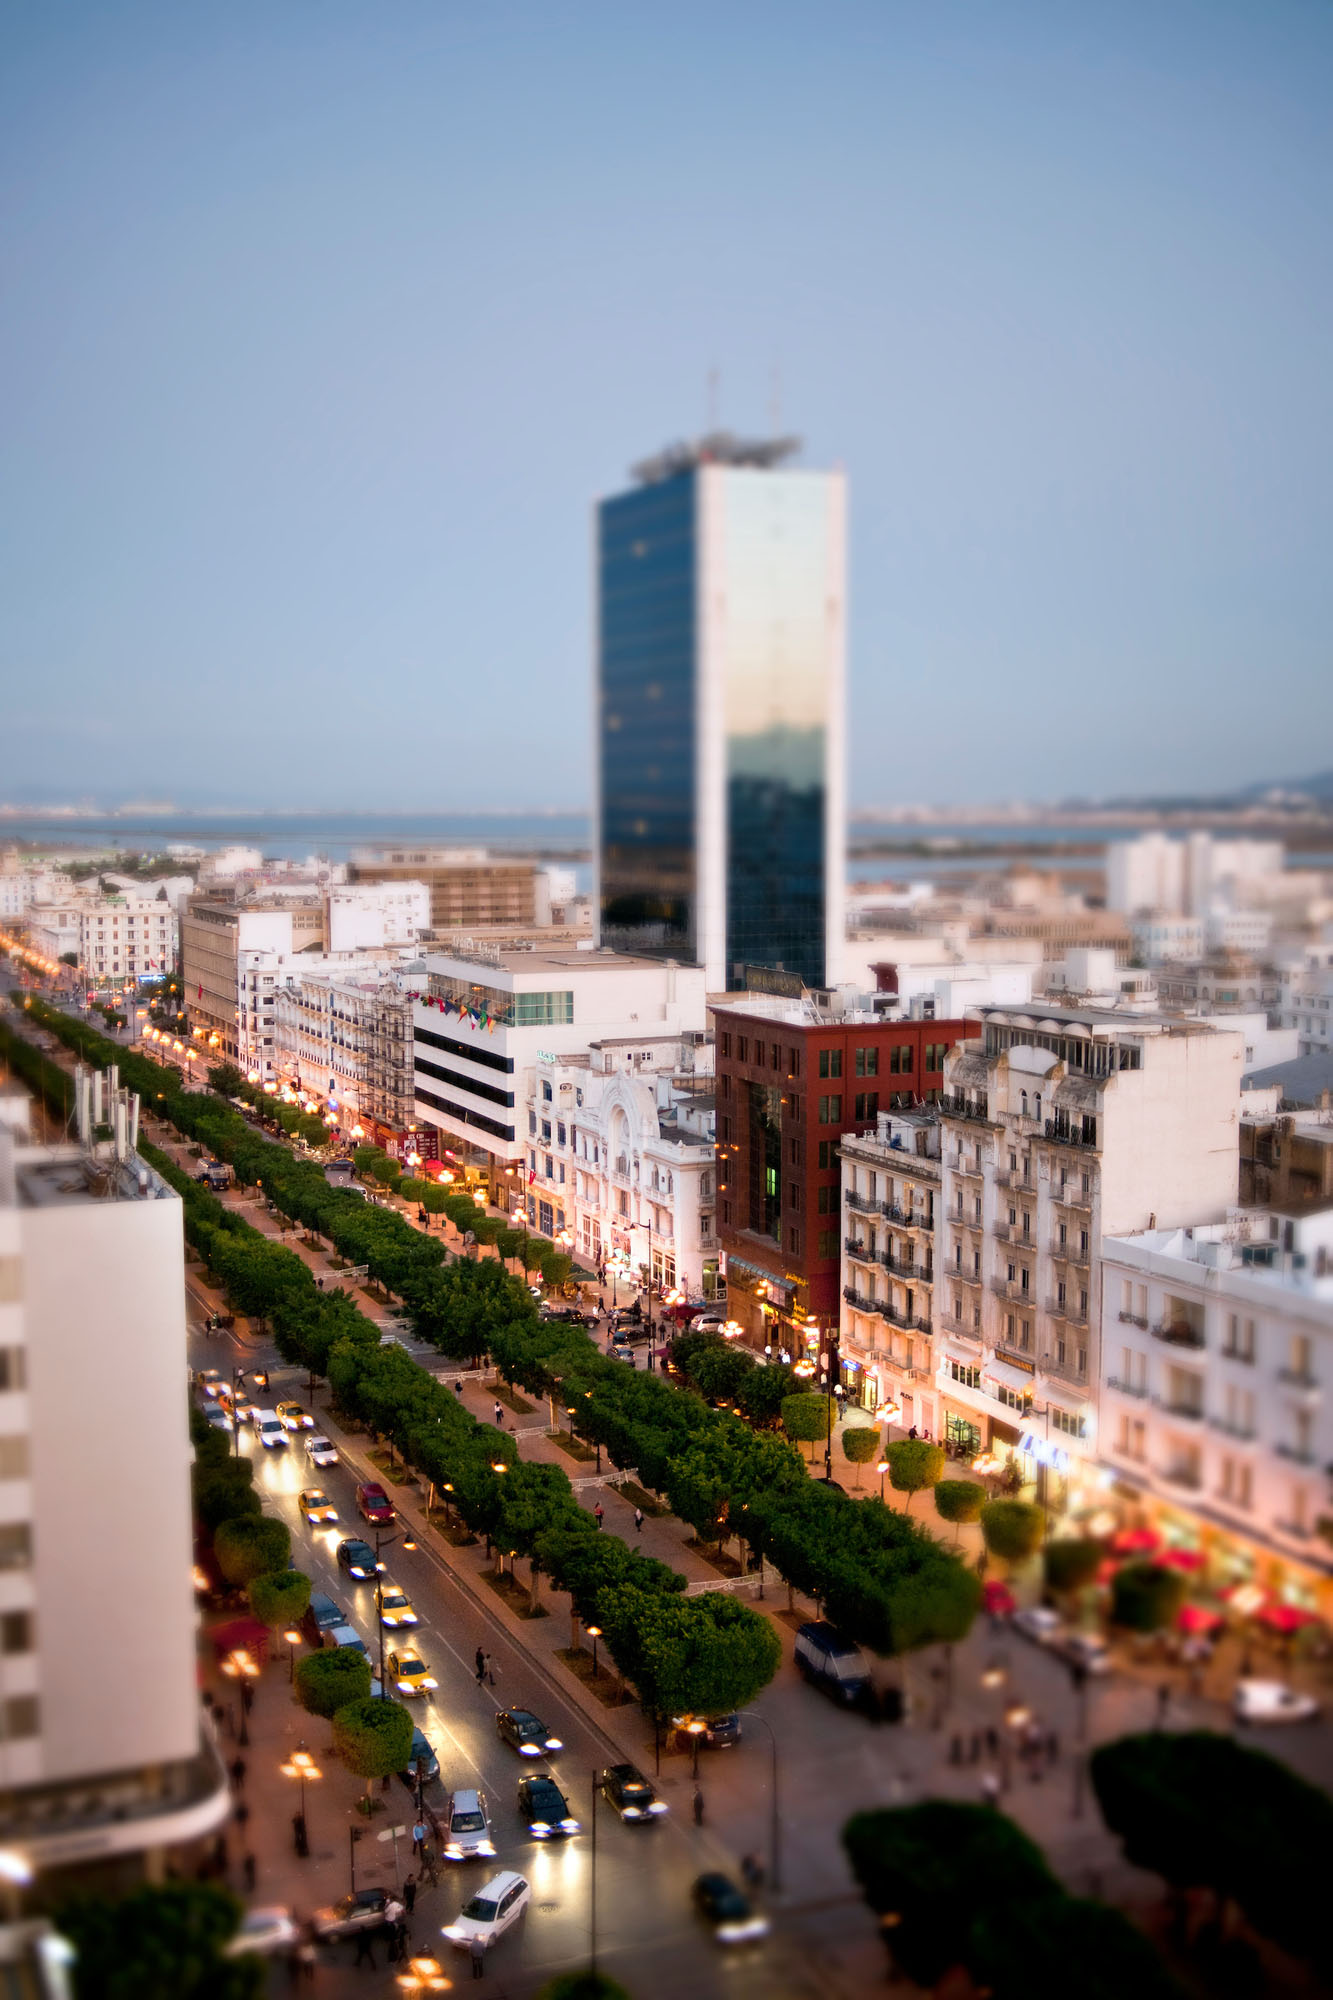 Tunisia - Street view